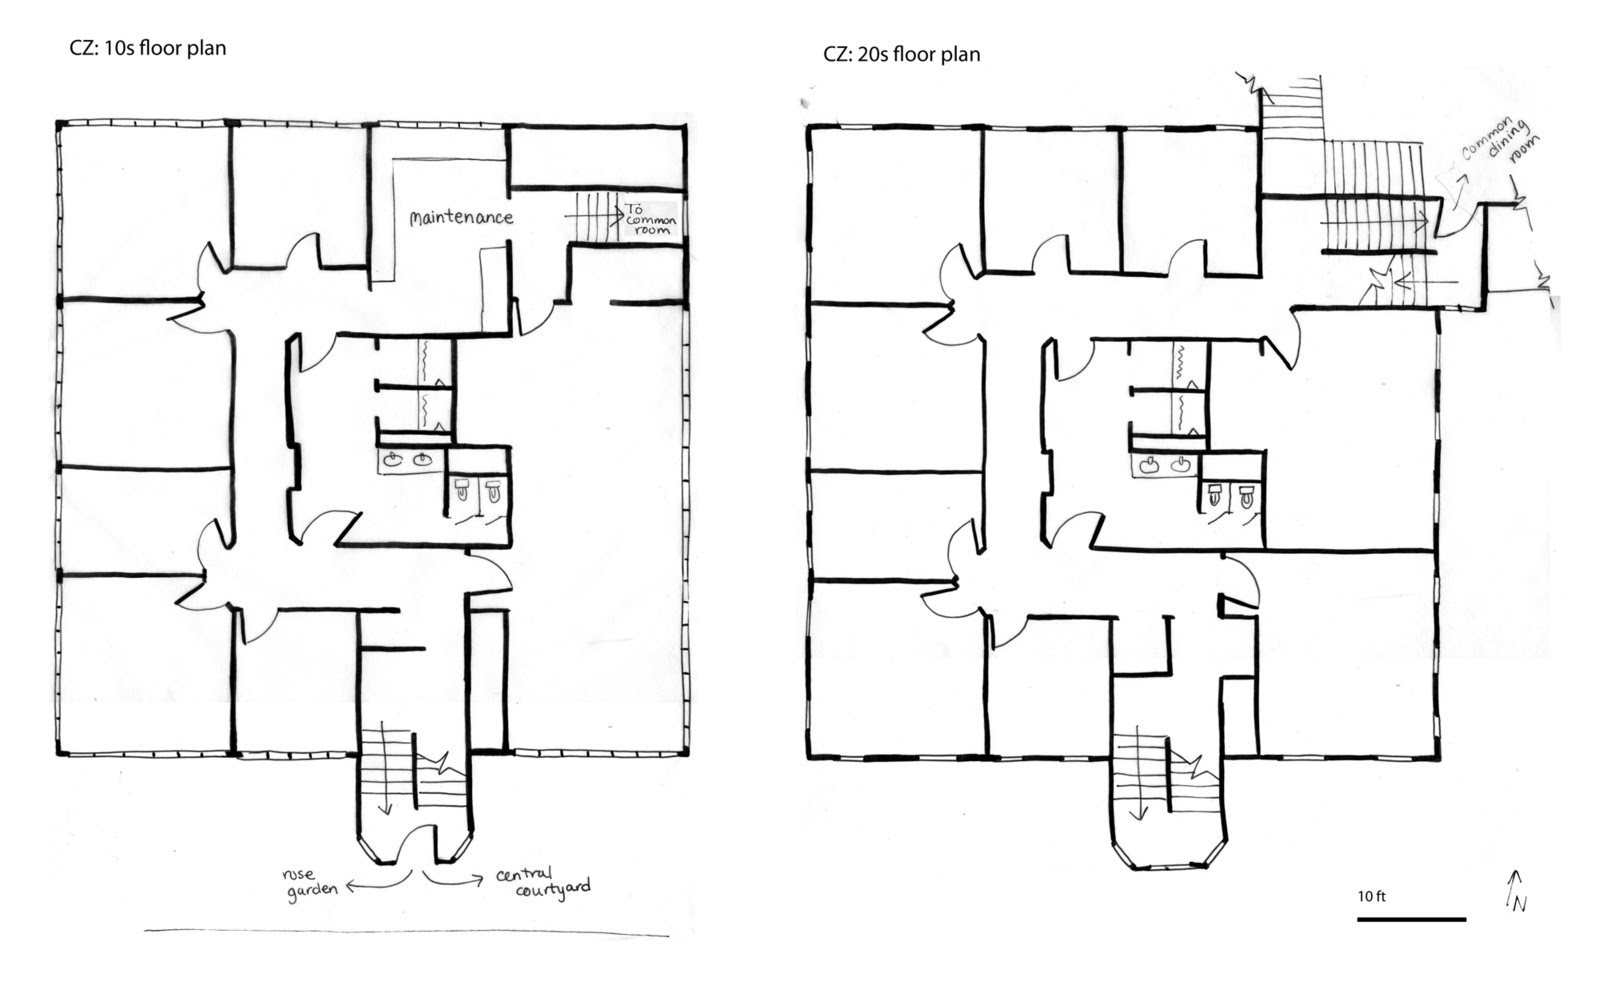 It 39 s a co op casa zimbabwe student co op house berkeley for 10 x 15 room layout